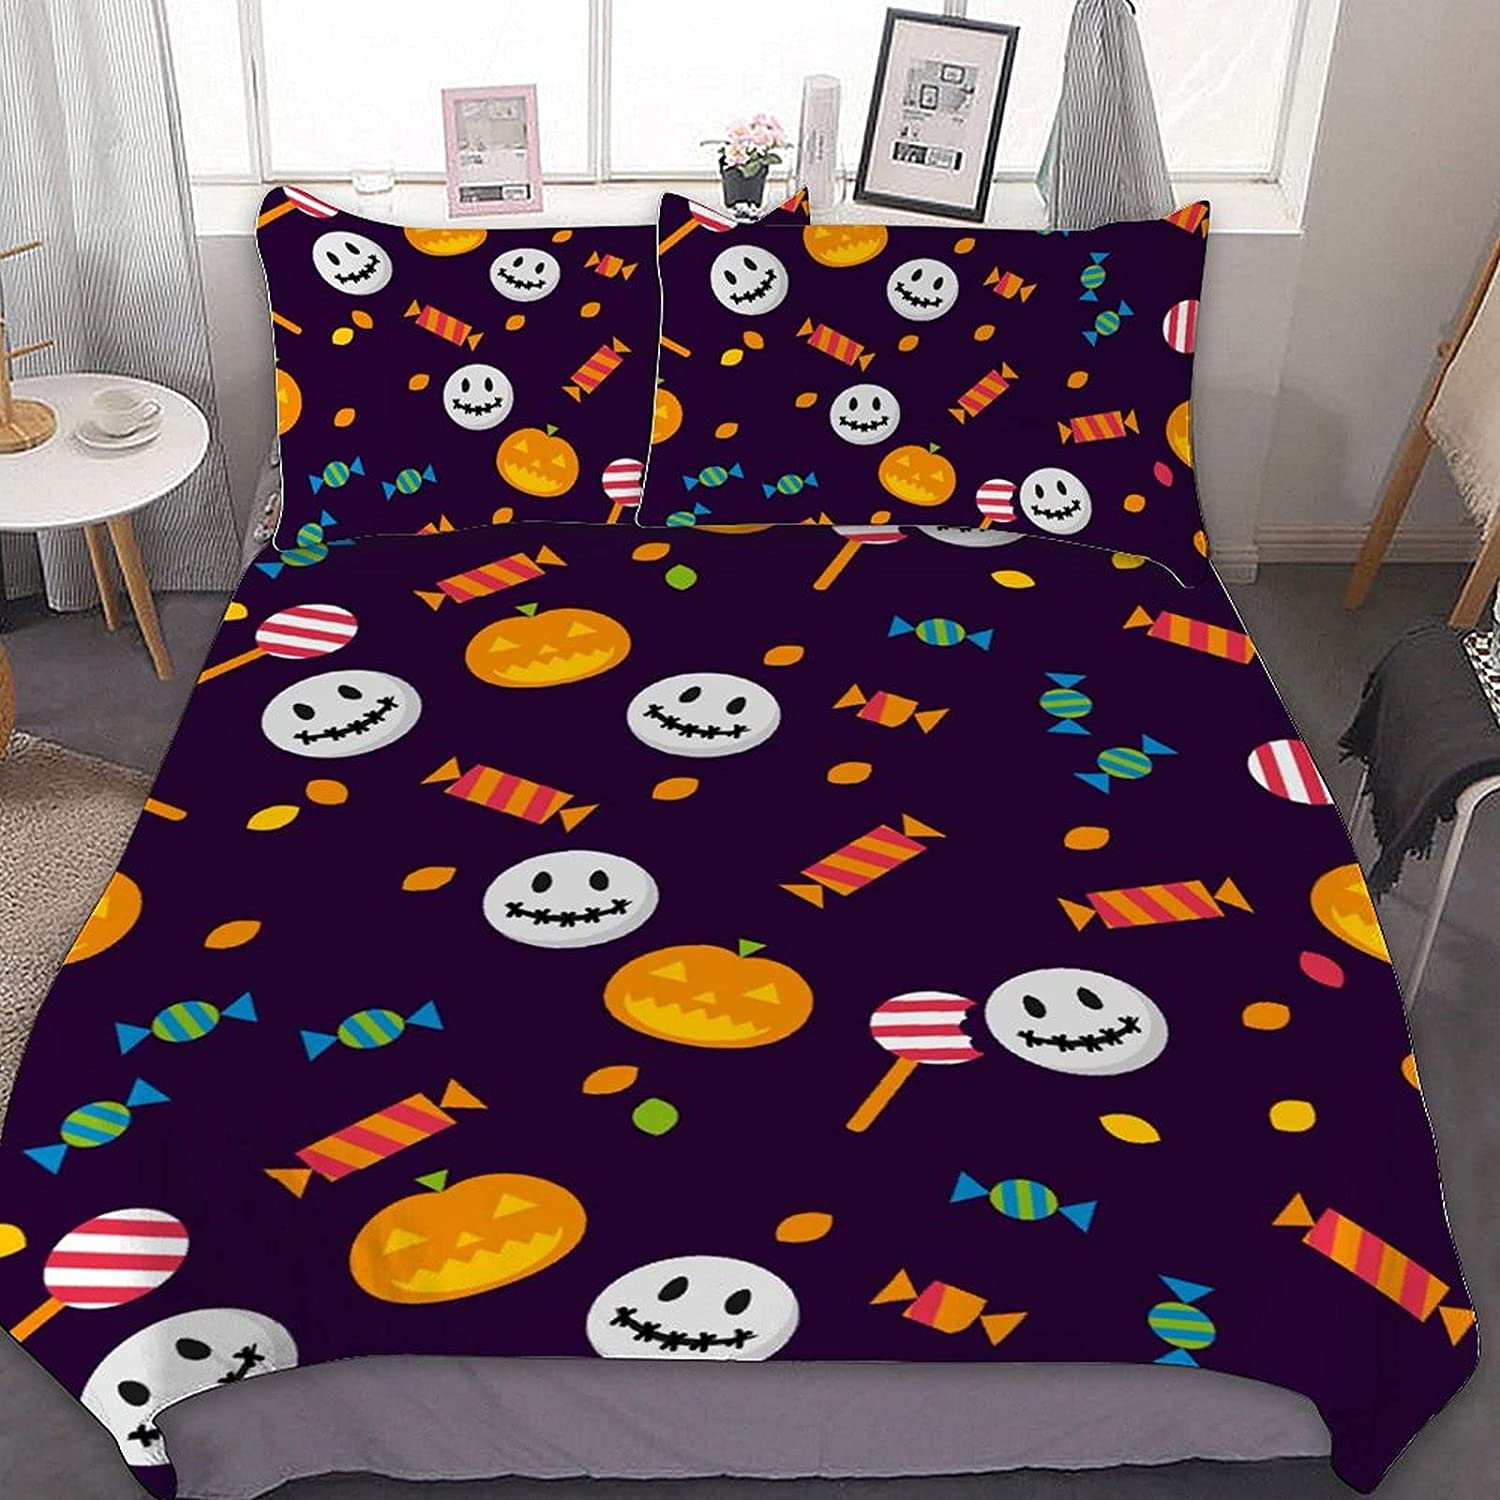 Halloween 3PCS High material Bedding Comforter Sets 1 Manufacturer regenerated product Cover with Pillowcases 2